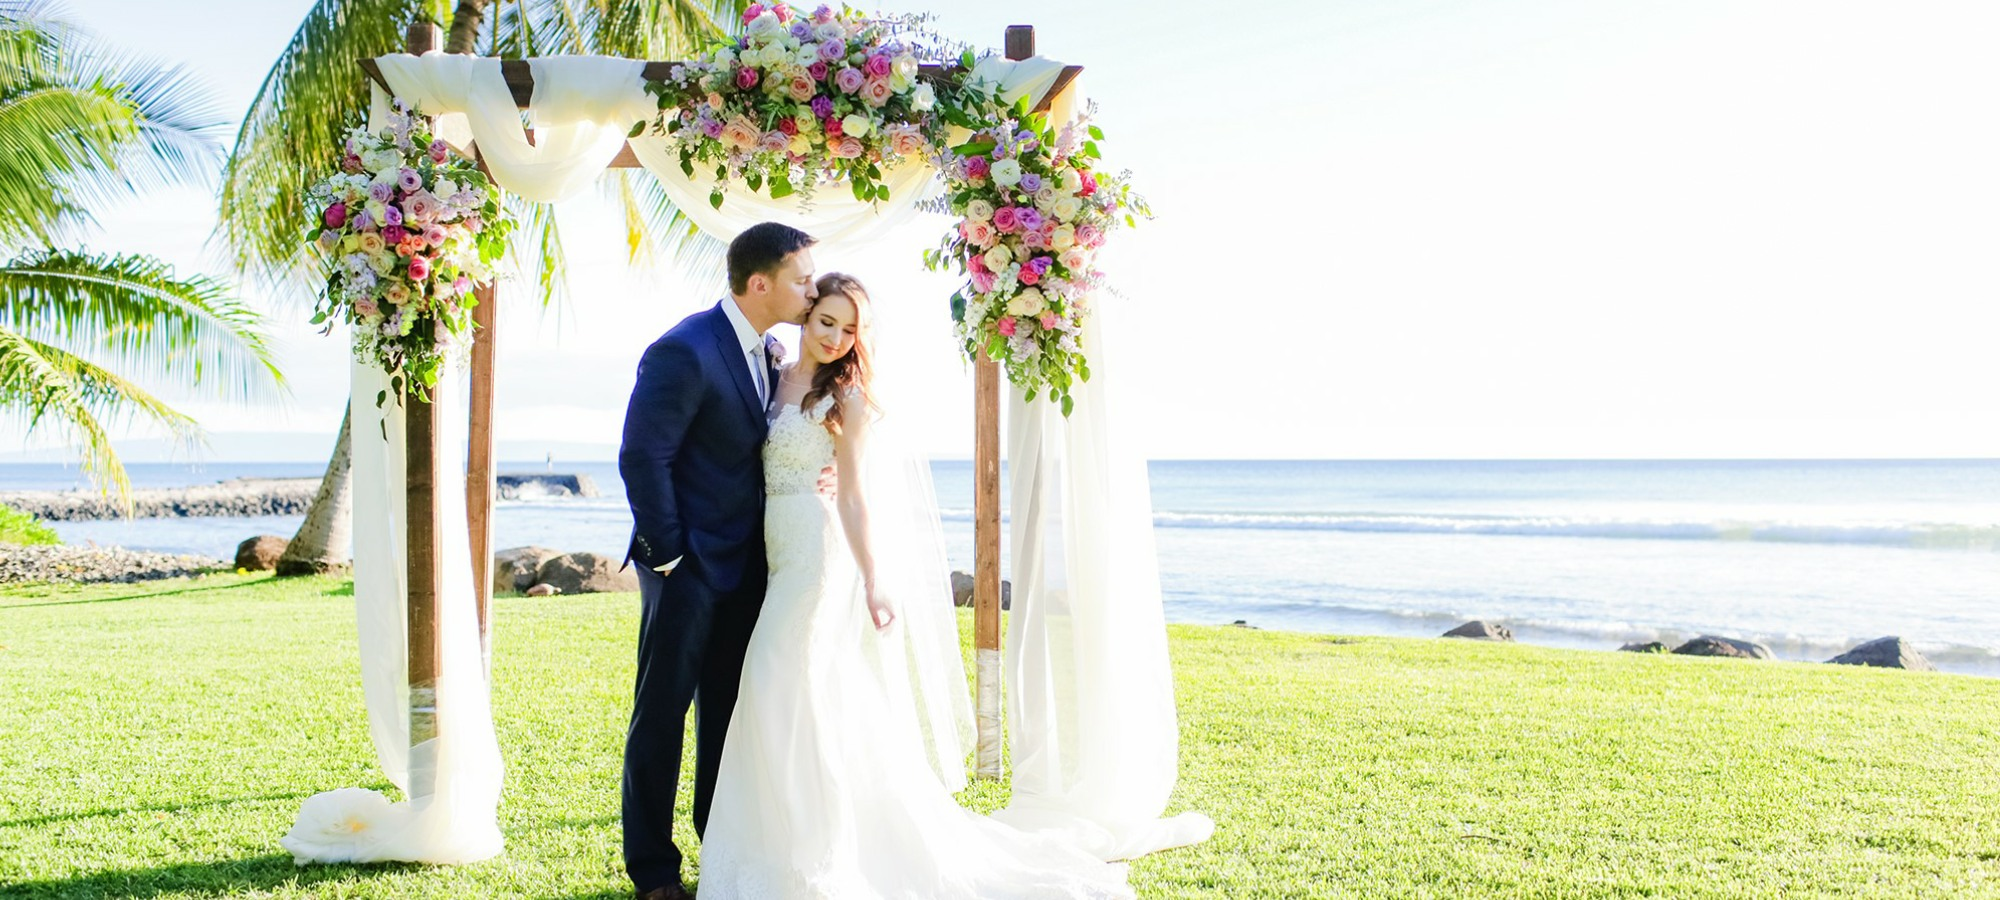 Maui wedding estate locations maui private estates for Maui wedding locations